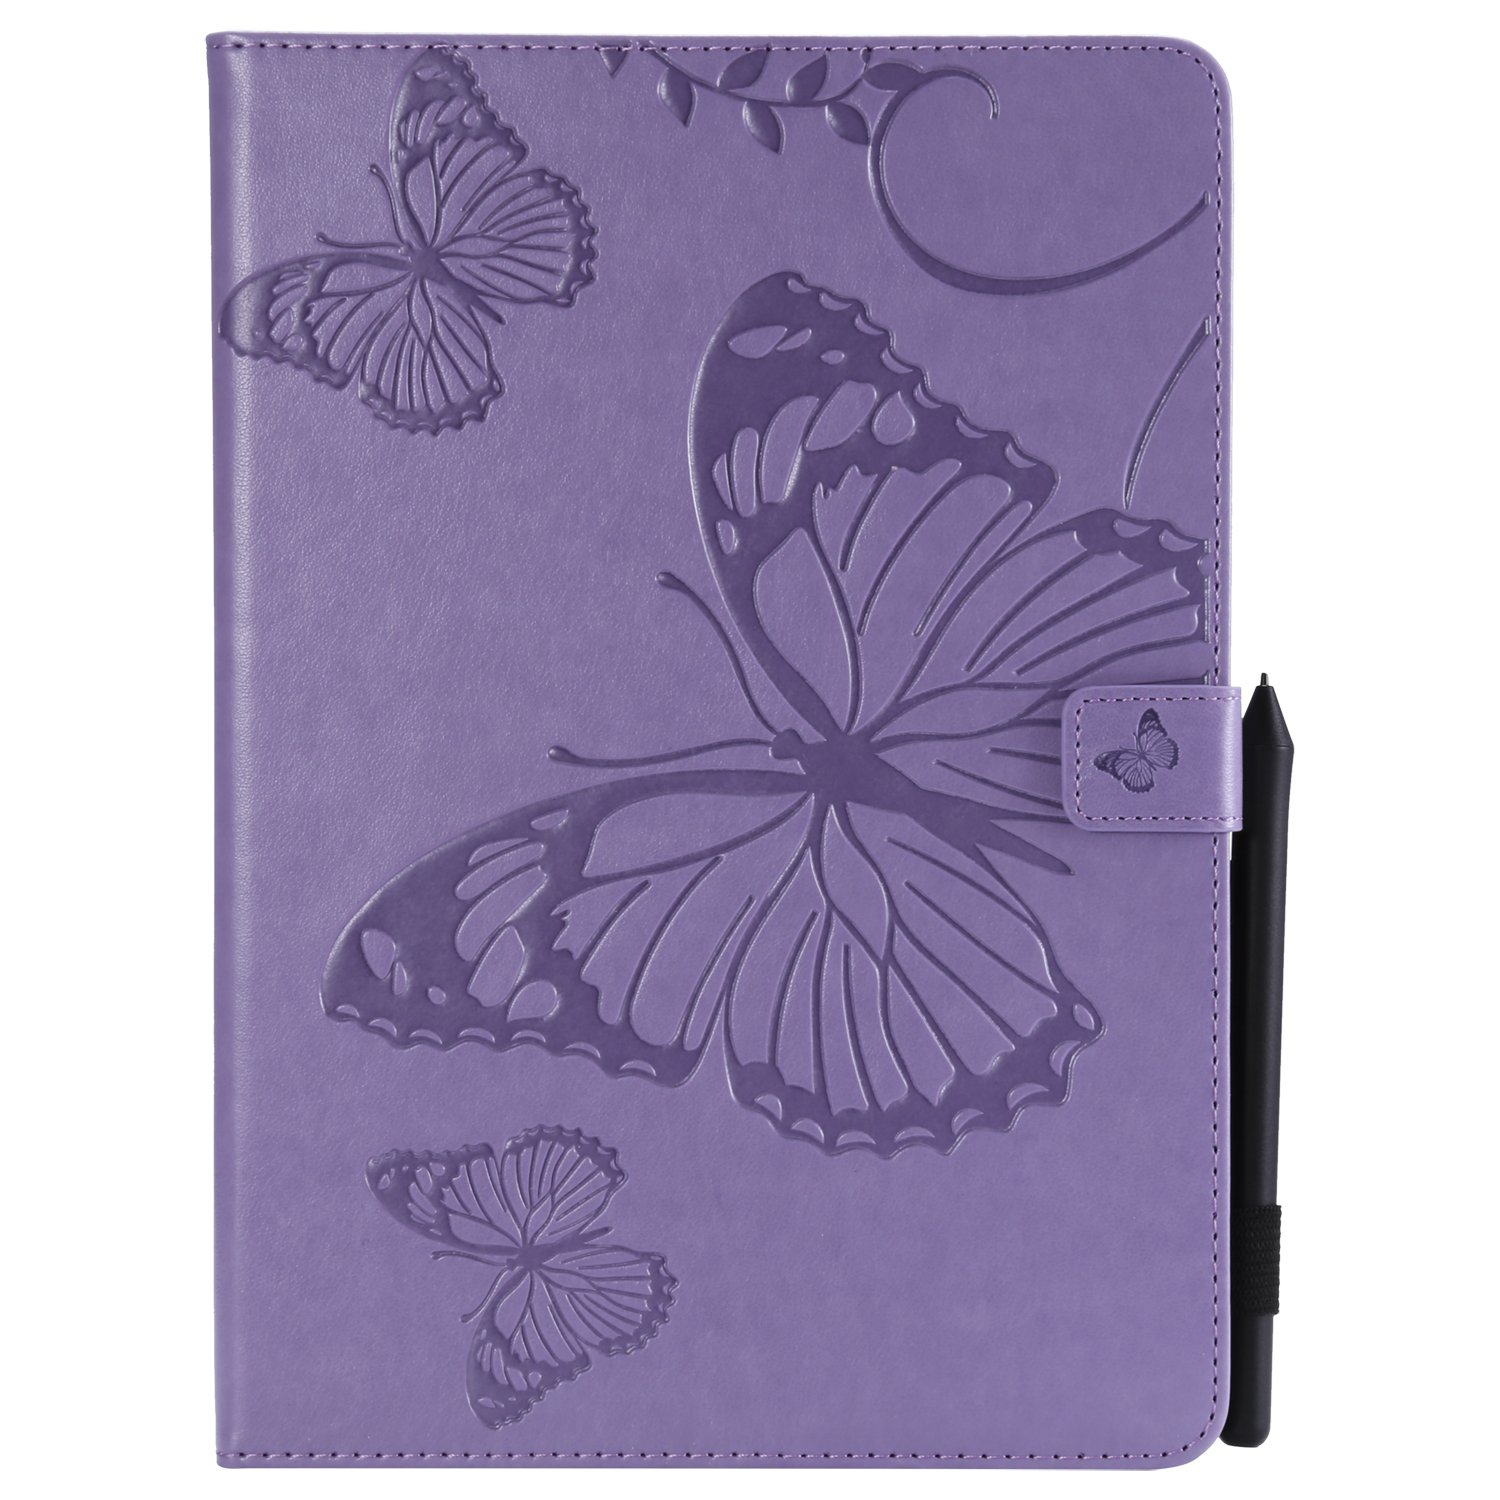 Bear Village iPad Pro 10.5 Inch Case, Butterfly Embossed Anti Scratch Shell with Adjust Stand, Smart Stand PU Leather Case for Apple iPad Pro 10.5 Inch, Purple by Bear Village